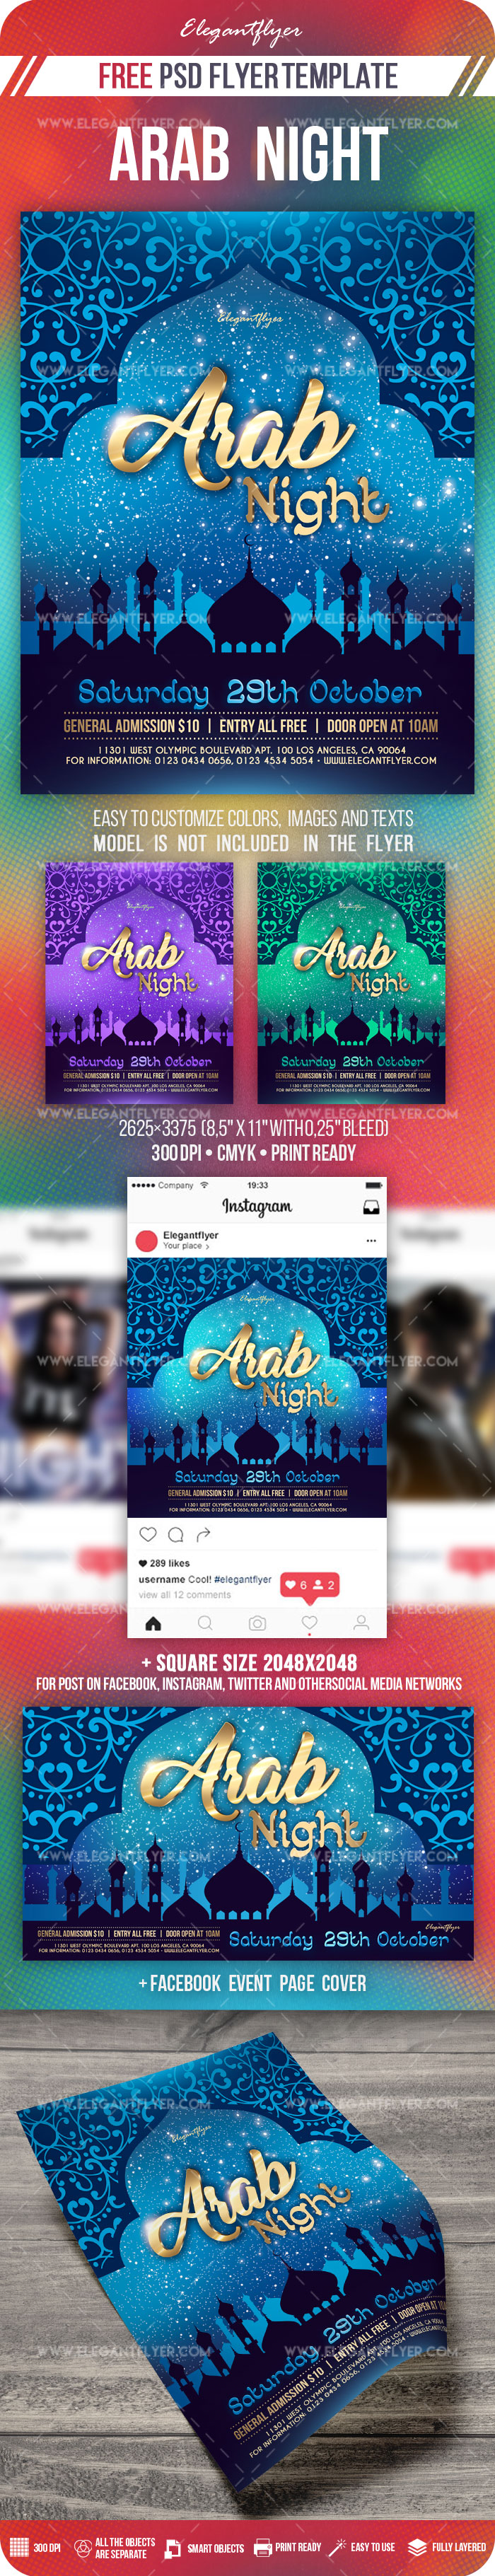 Arab Night – Free PSD Flyer Template + Facebook Cover + Instagram Post